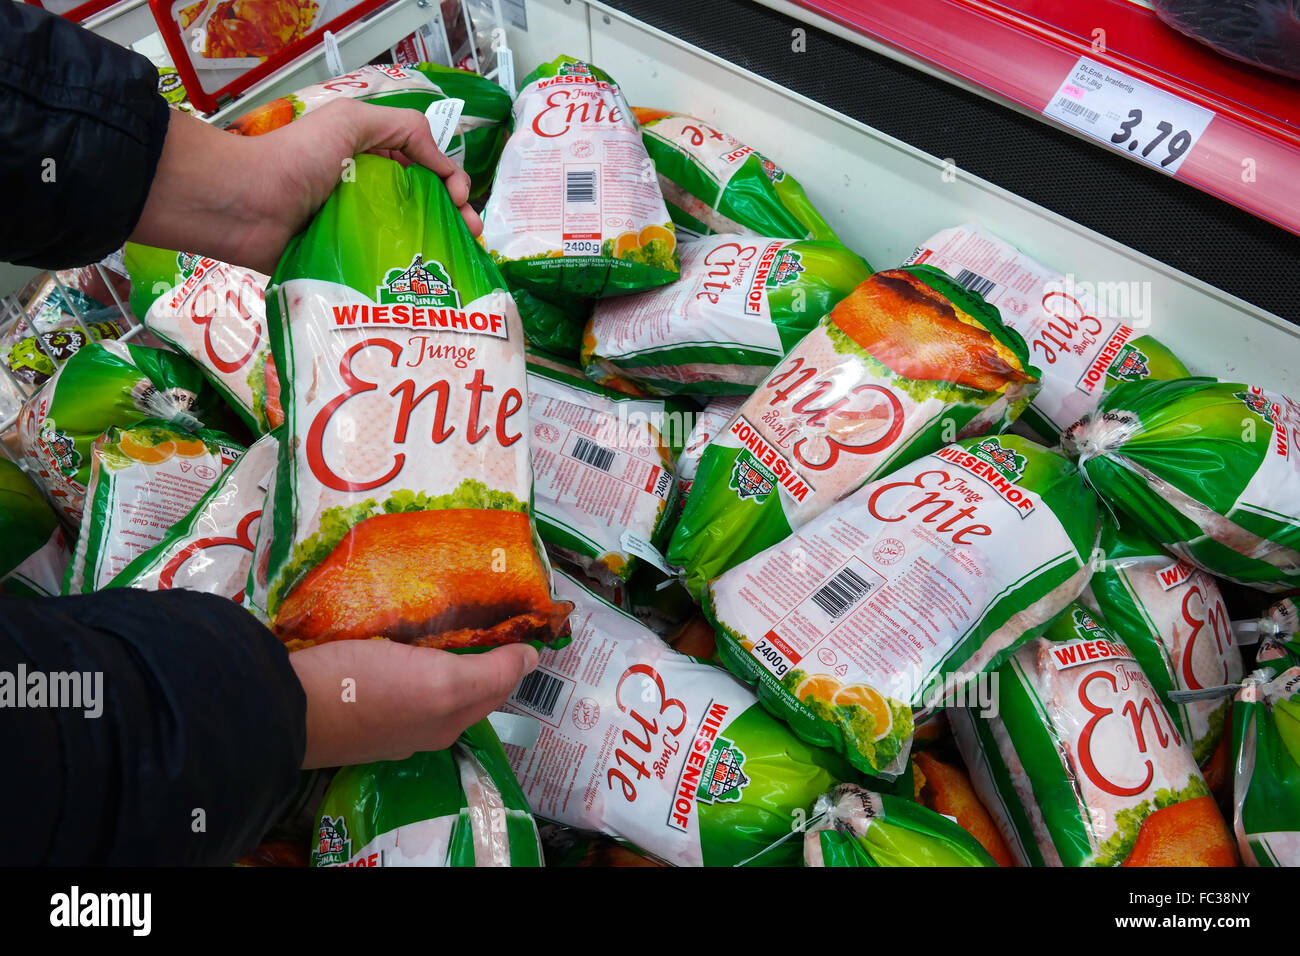 Poultry, deep frozen duck packings in a supermarket - Stock Image